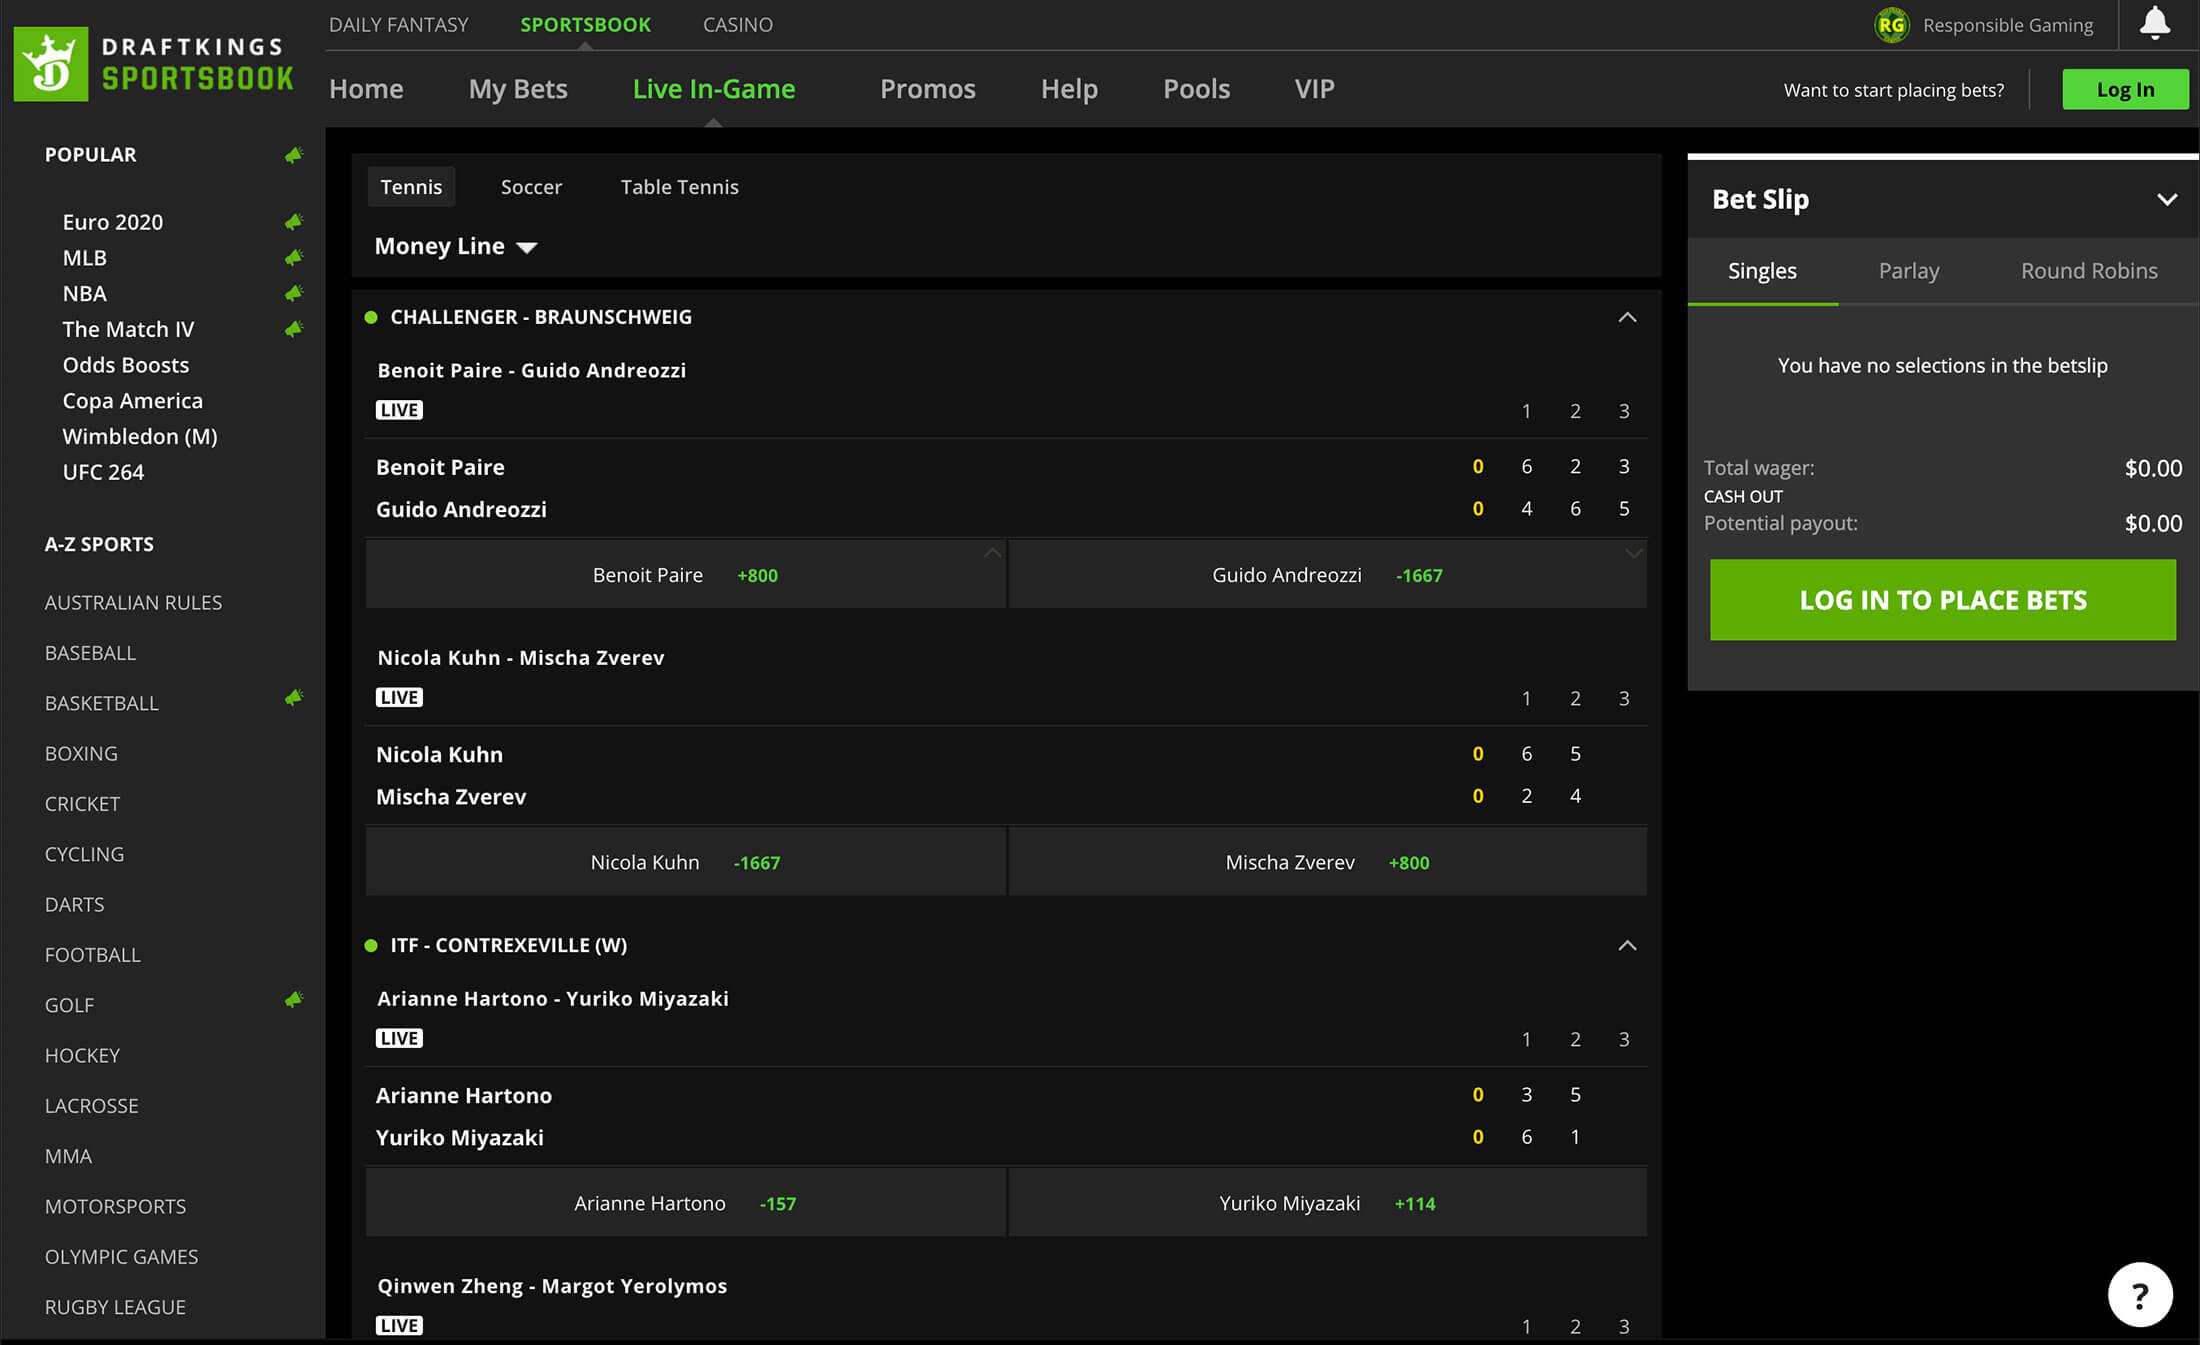 DraftKings Sportsbook Live Betting